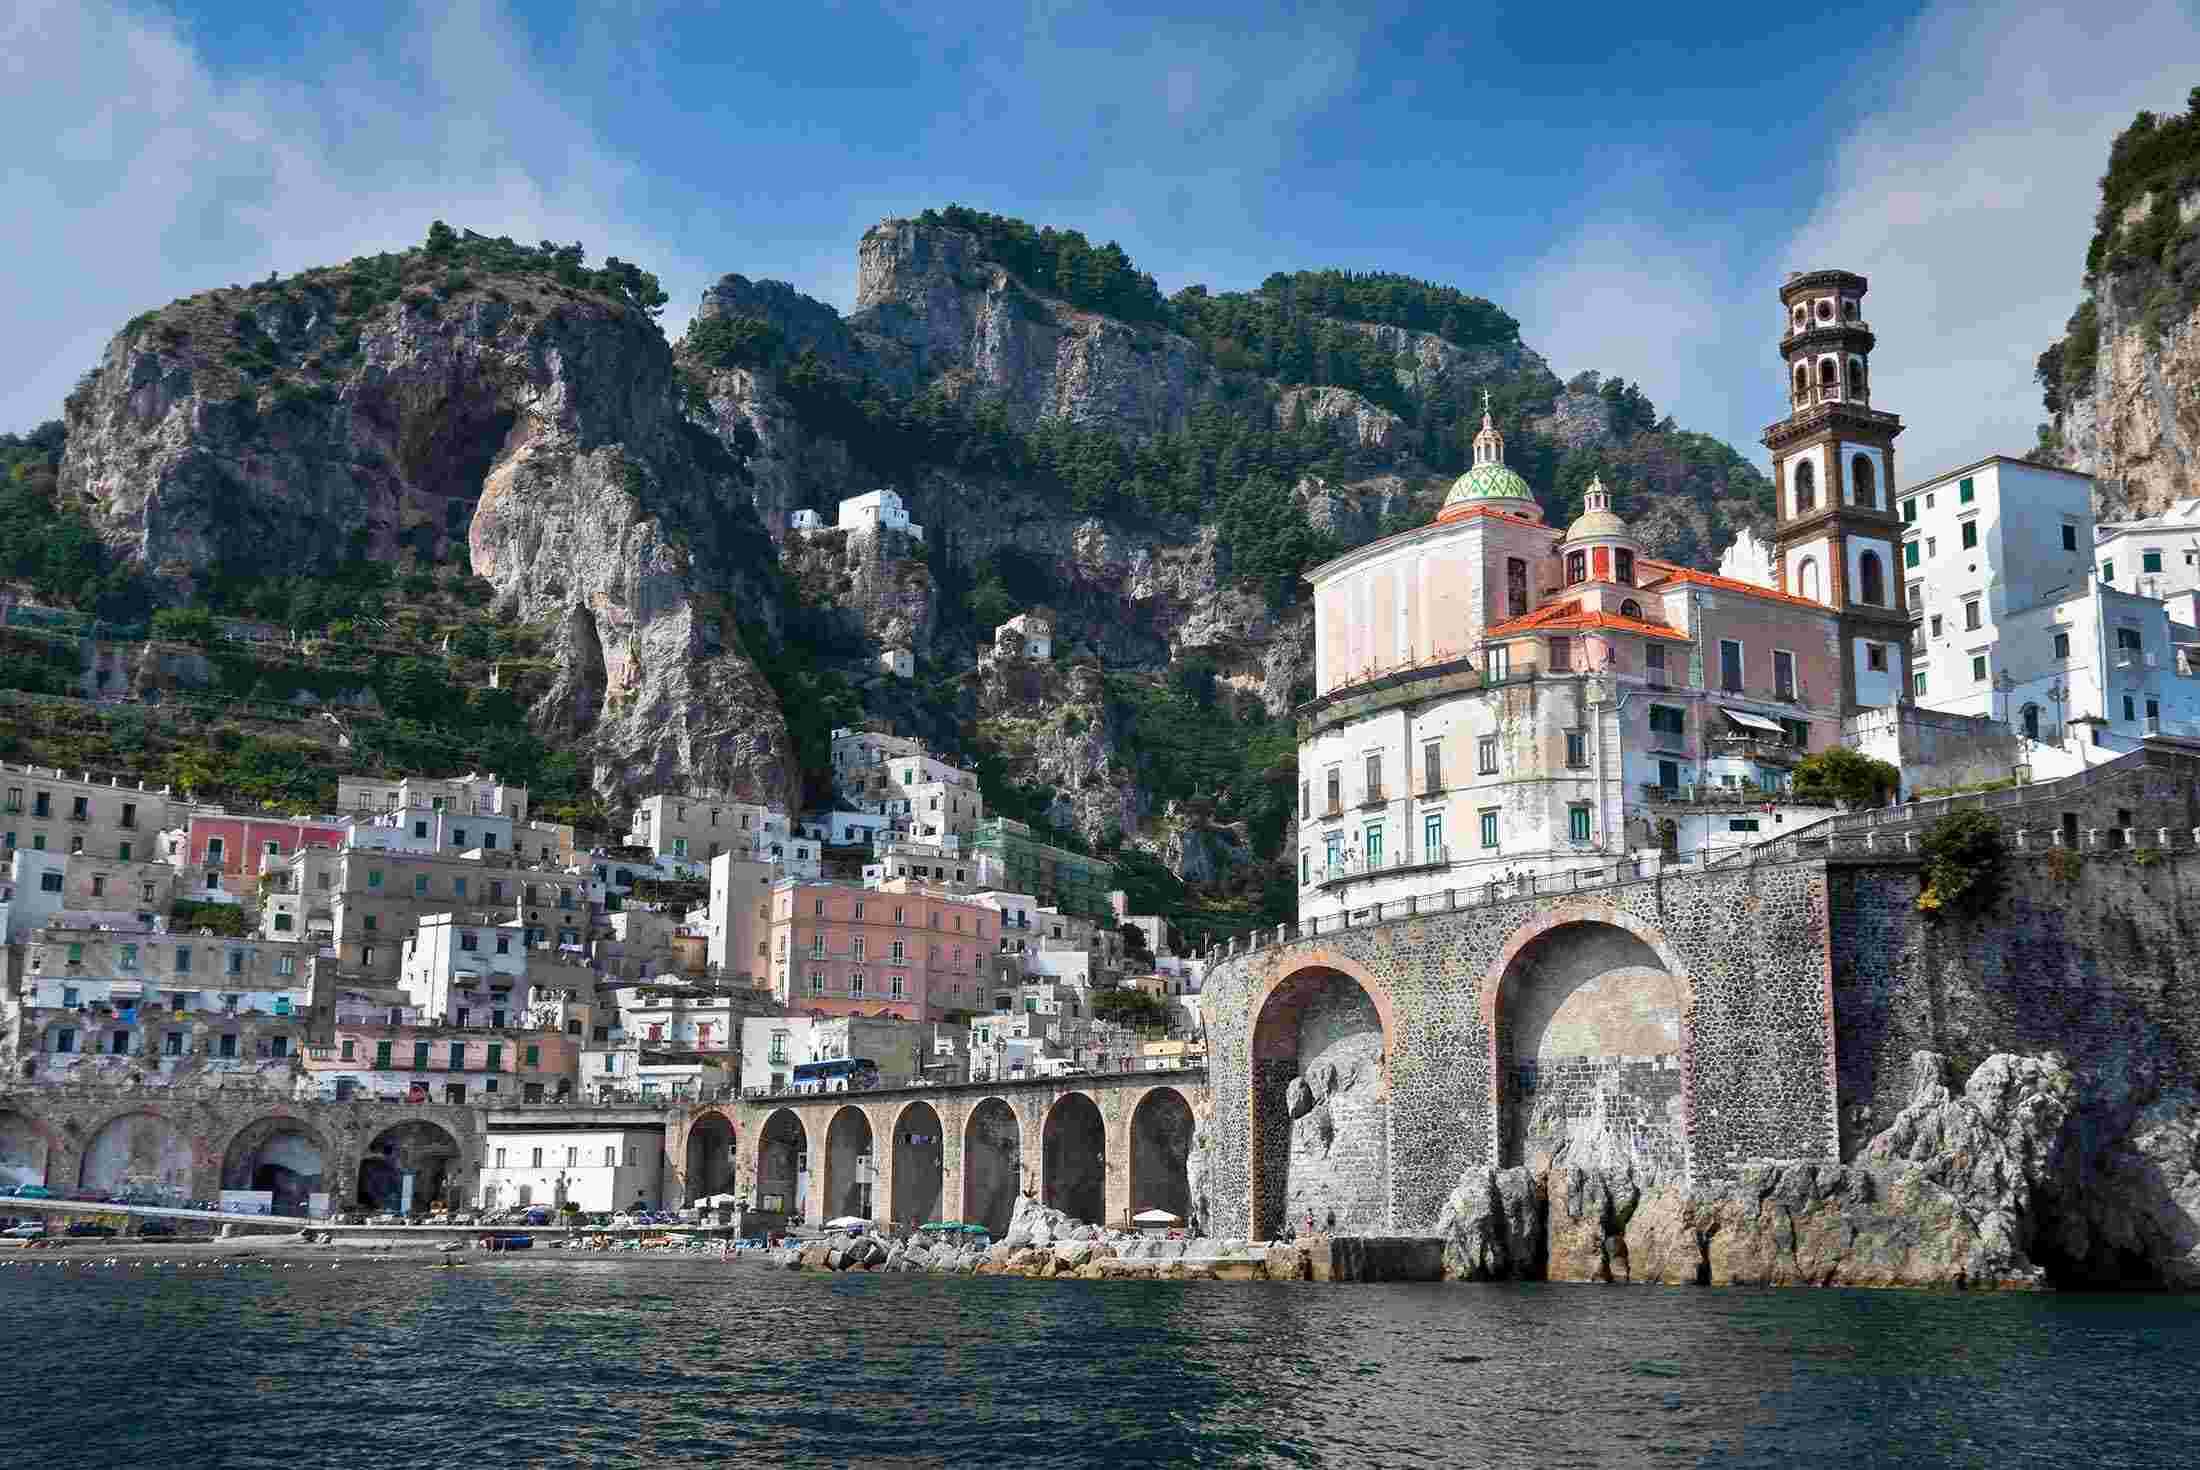 amalfi dating site Visit beautiful amalfi coast with fellow 18-35 year old adventurers and travel with   dating back to the byzantine era, the republic of amalfi once celebrated.